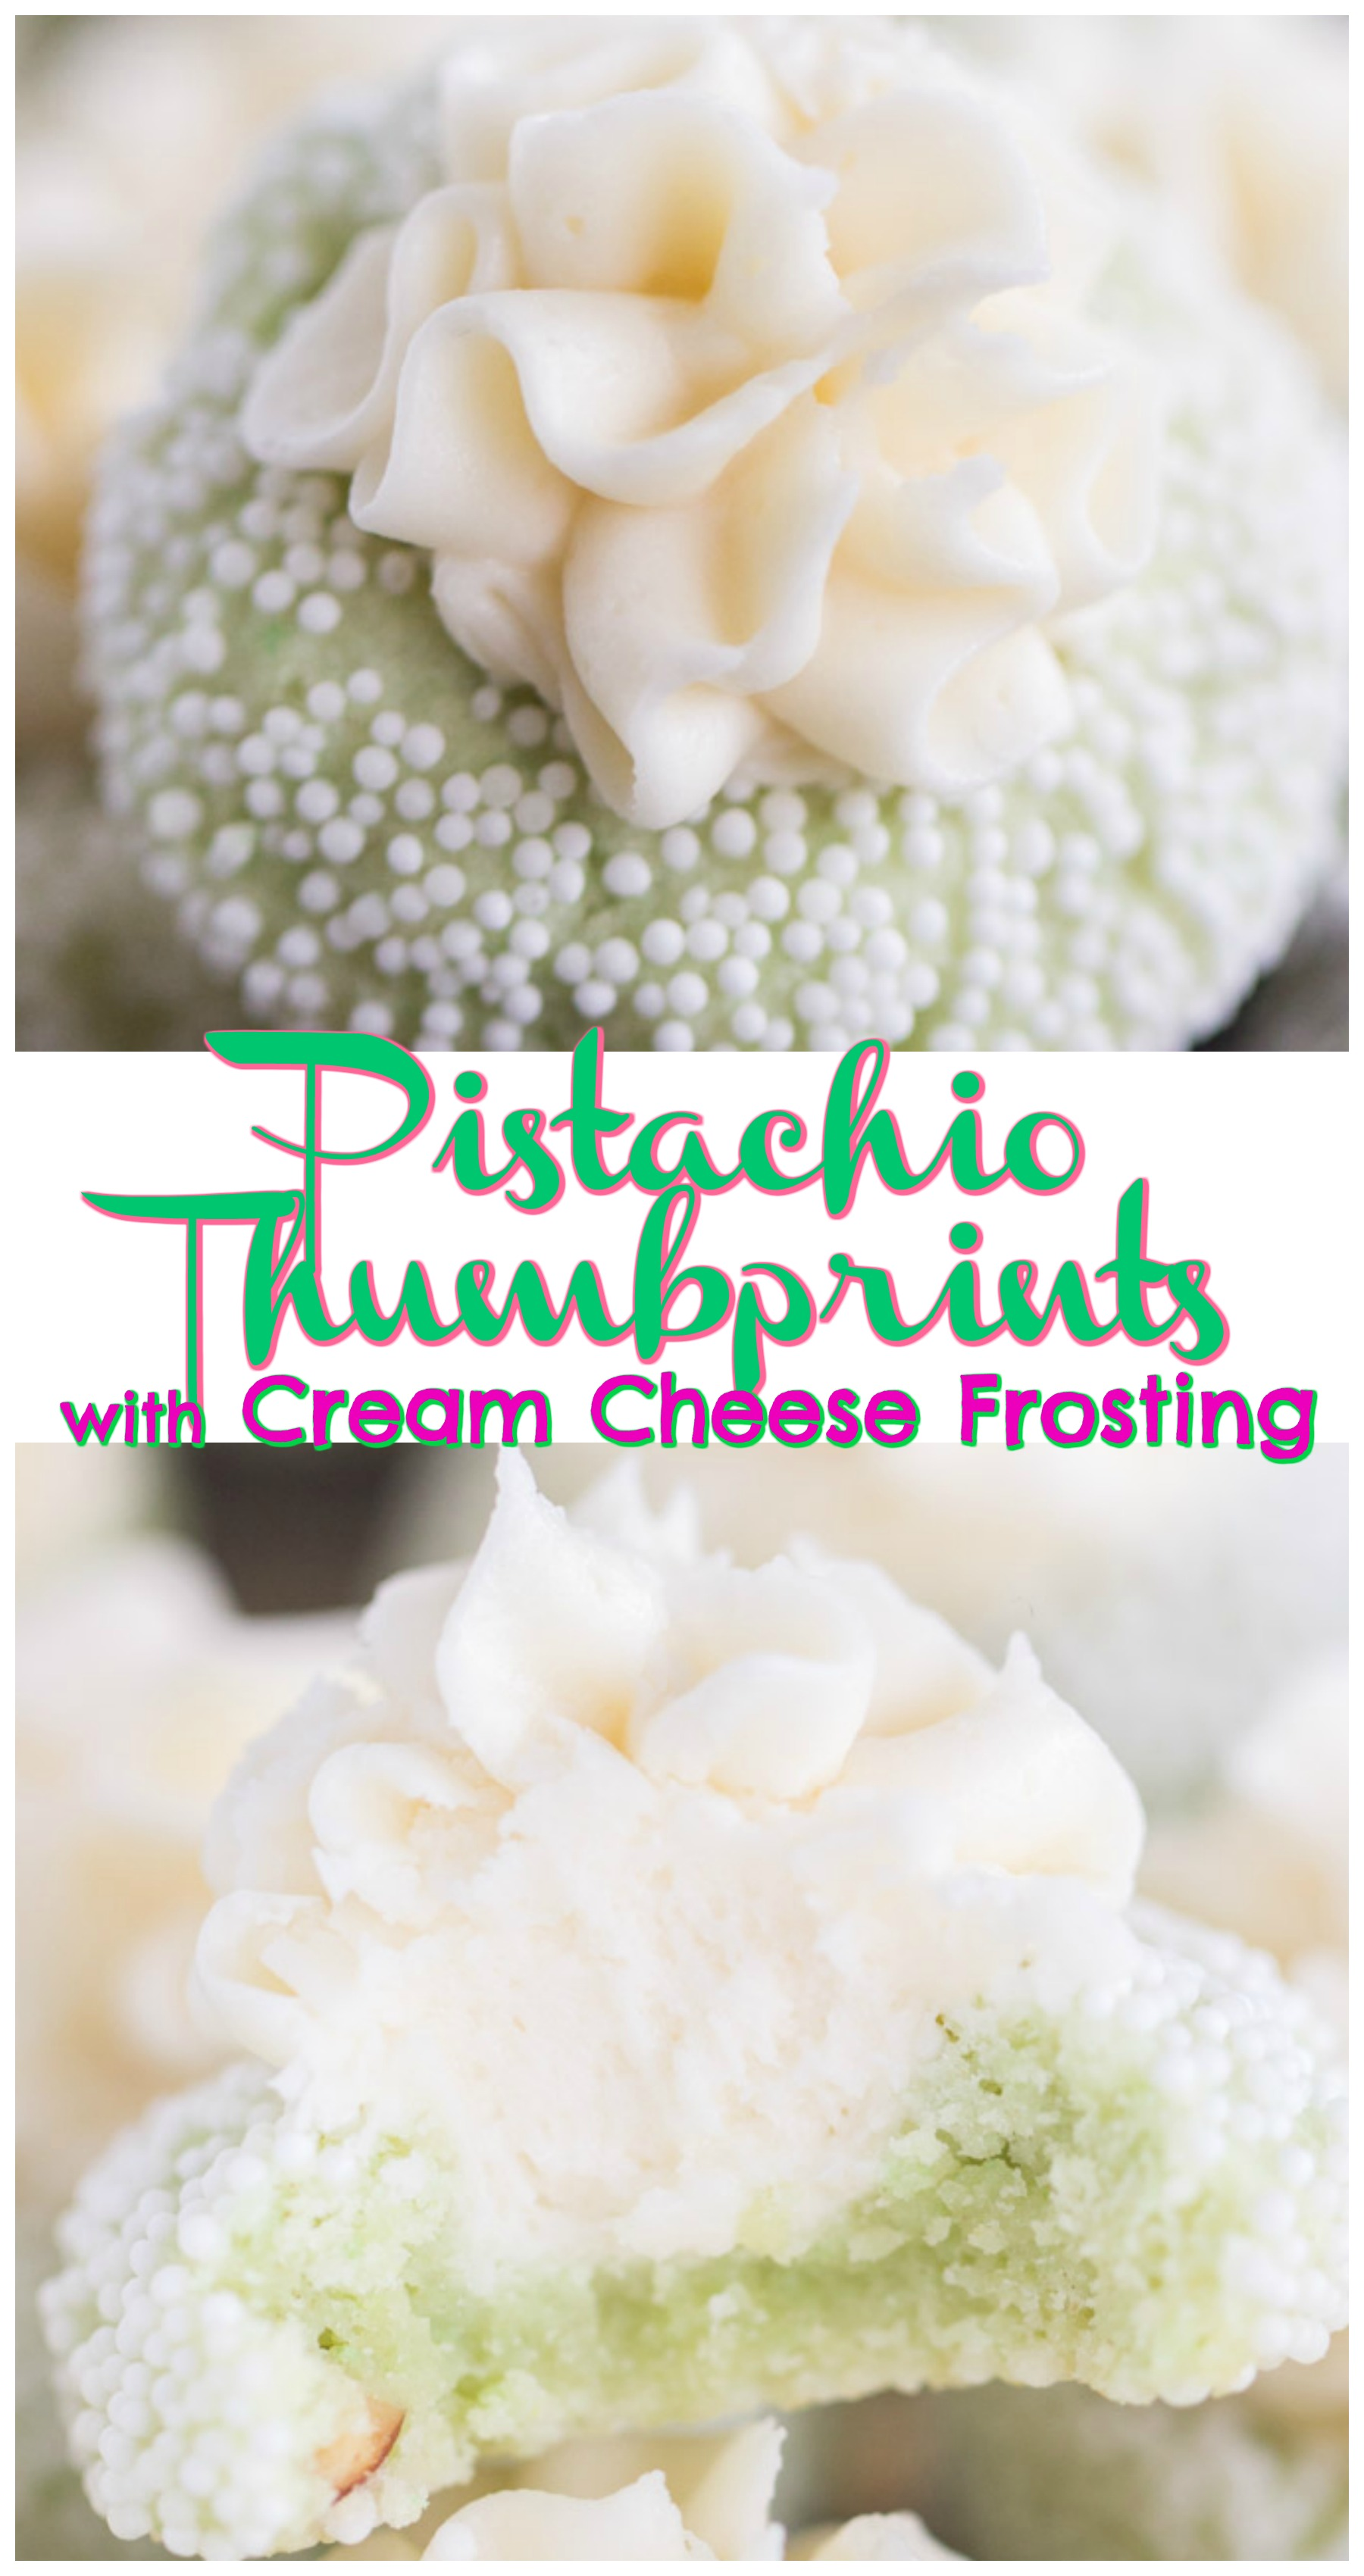 Thumbprint Pistachio Cookies With Cream Cheese Frosting